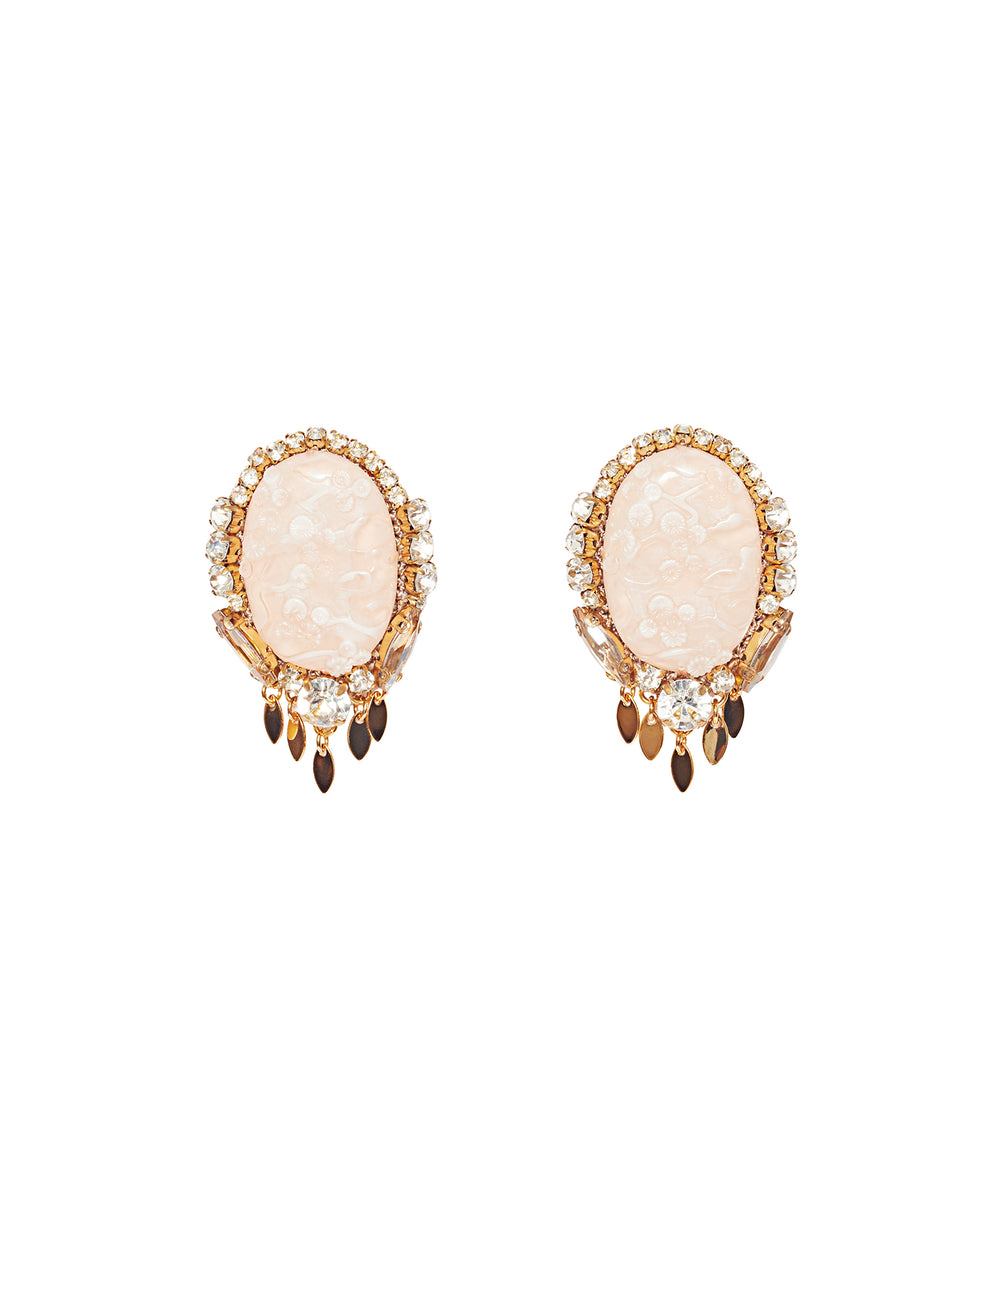 Tao earrings (stud)